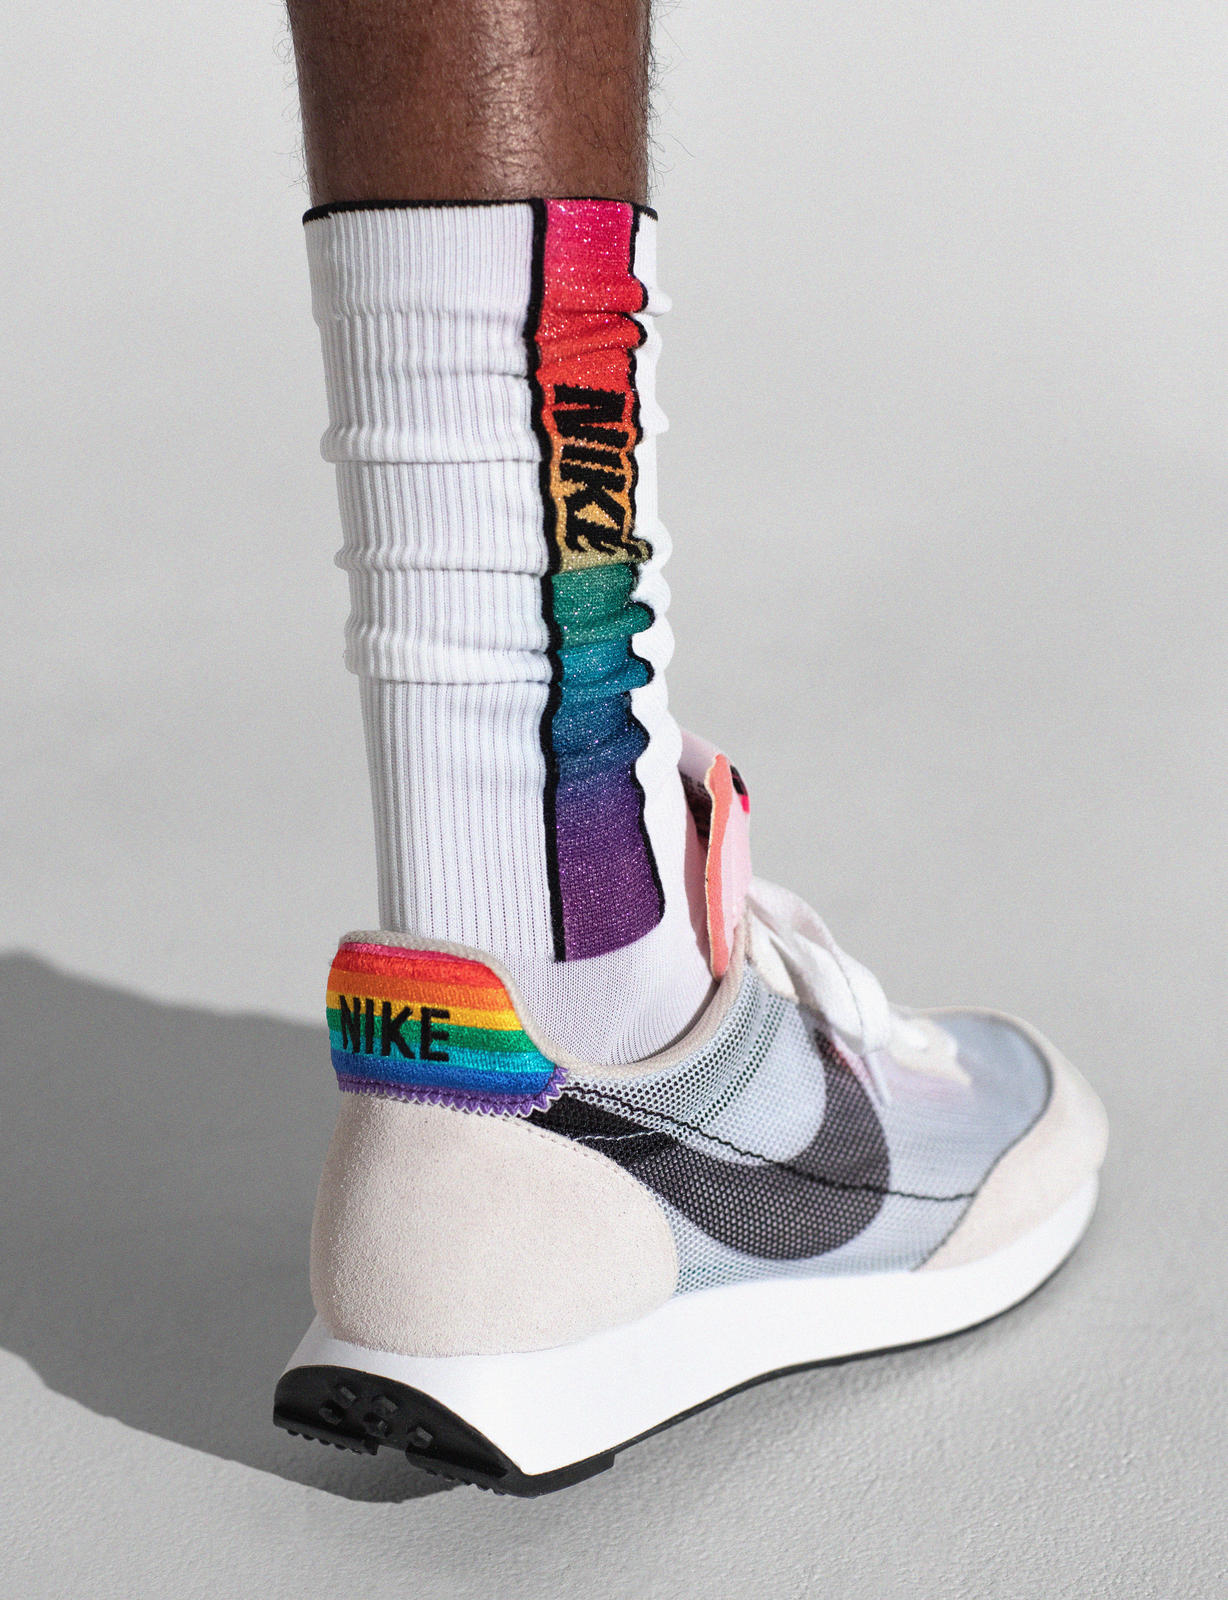 Nike-BETRUE-2019-Collection-19_88115